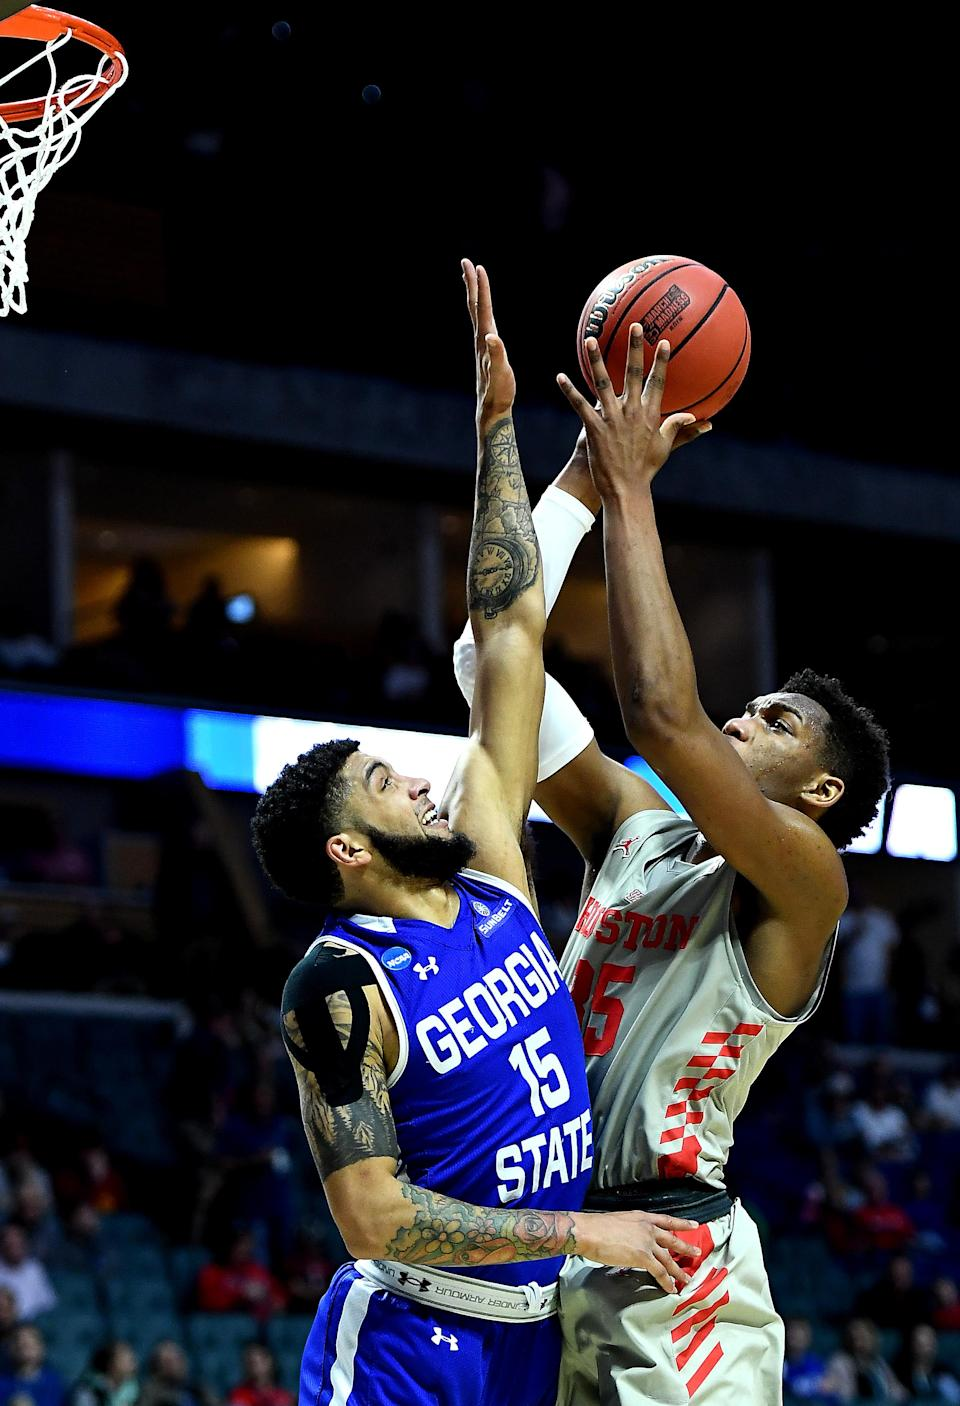 <p>Fabian White Jr. #35 of the Houston Cougars shoots the ball against D'Marcus Simonds #15 of the Georgia State Panthers during the first half in the first round game of the 2019 NCAA Men's Basketball Tournament at BOK Center on March 22, 2019 in Tulsa, Oklahoma. </p>